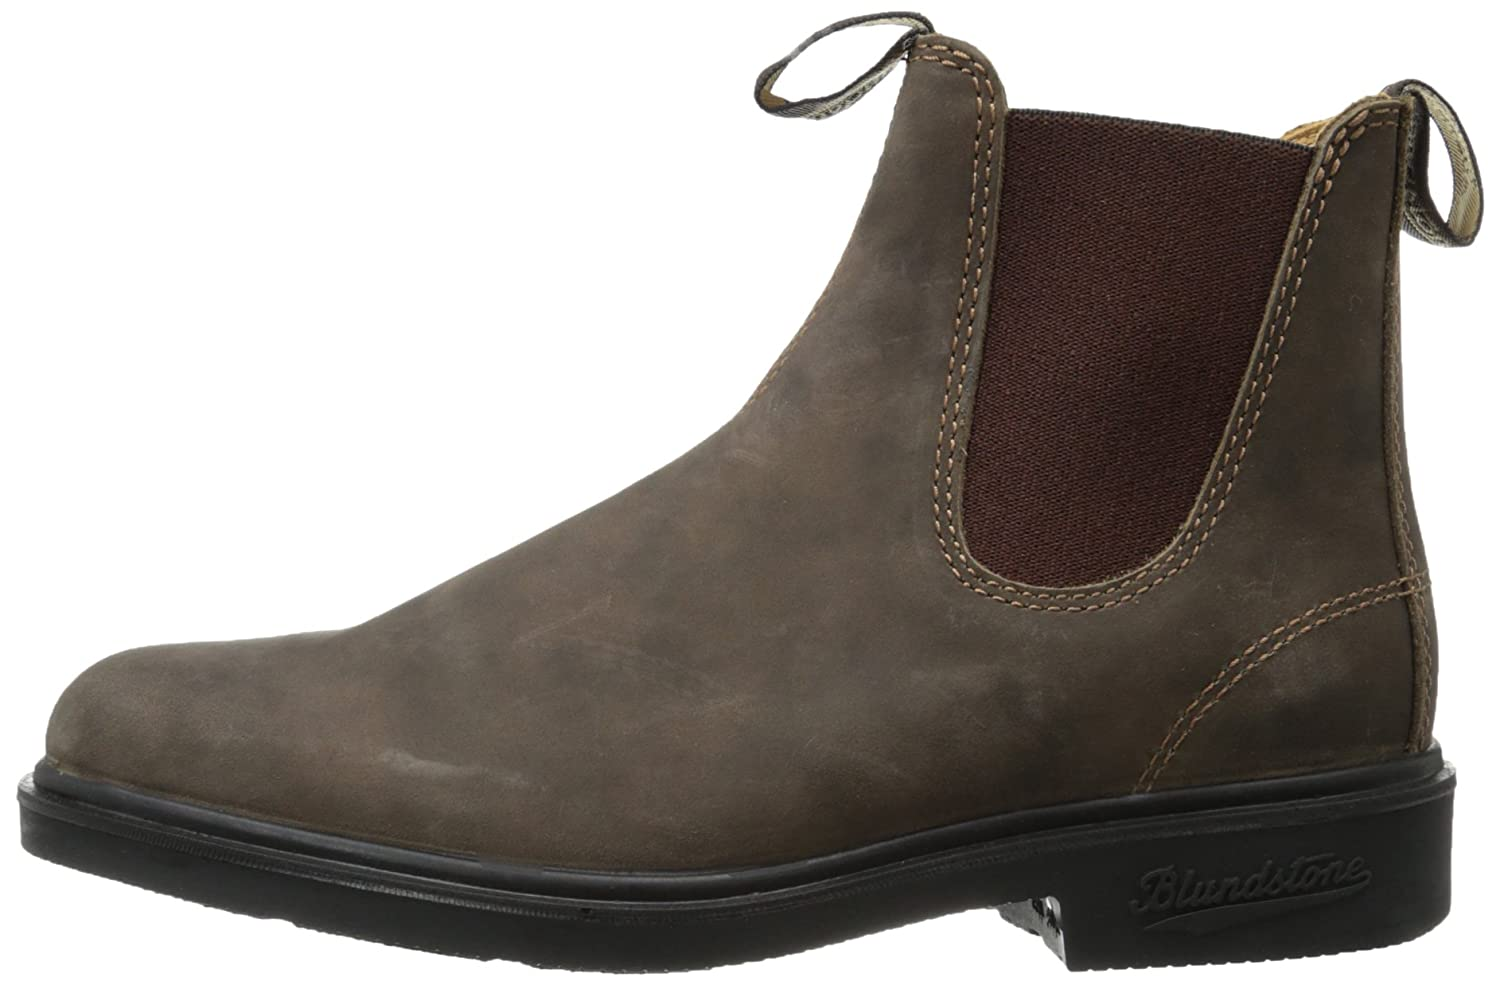 Blundstone Unisex Dress Series B00BXLSISQ 10 M US Men's /12 M US Women's -9 AU|Rustic Brown